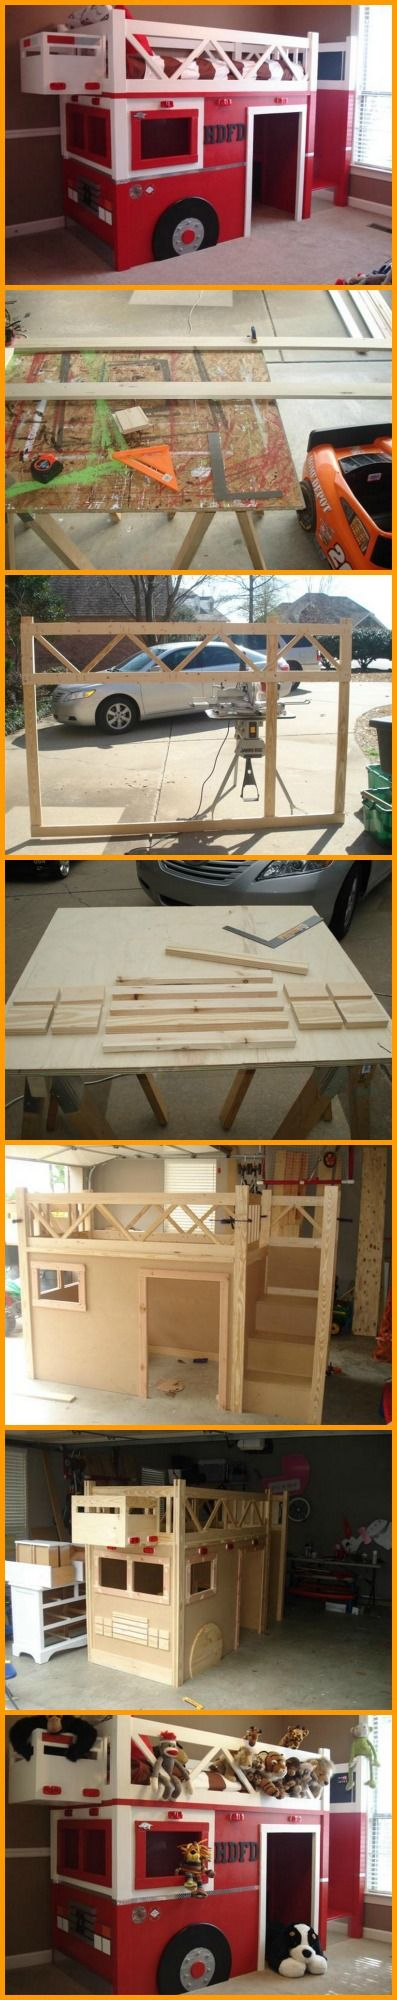 Kids love bunk beds, but you don't have to spend a lot of money to make them happy. You can make your own fire truck bunk bed, and make it a weekend bonding activity/project with the family. View how it's made here: http://theownerbuildernetwork.co/l4h3 Show this to a friend or relative who you think would love it too!